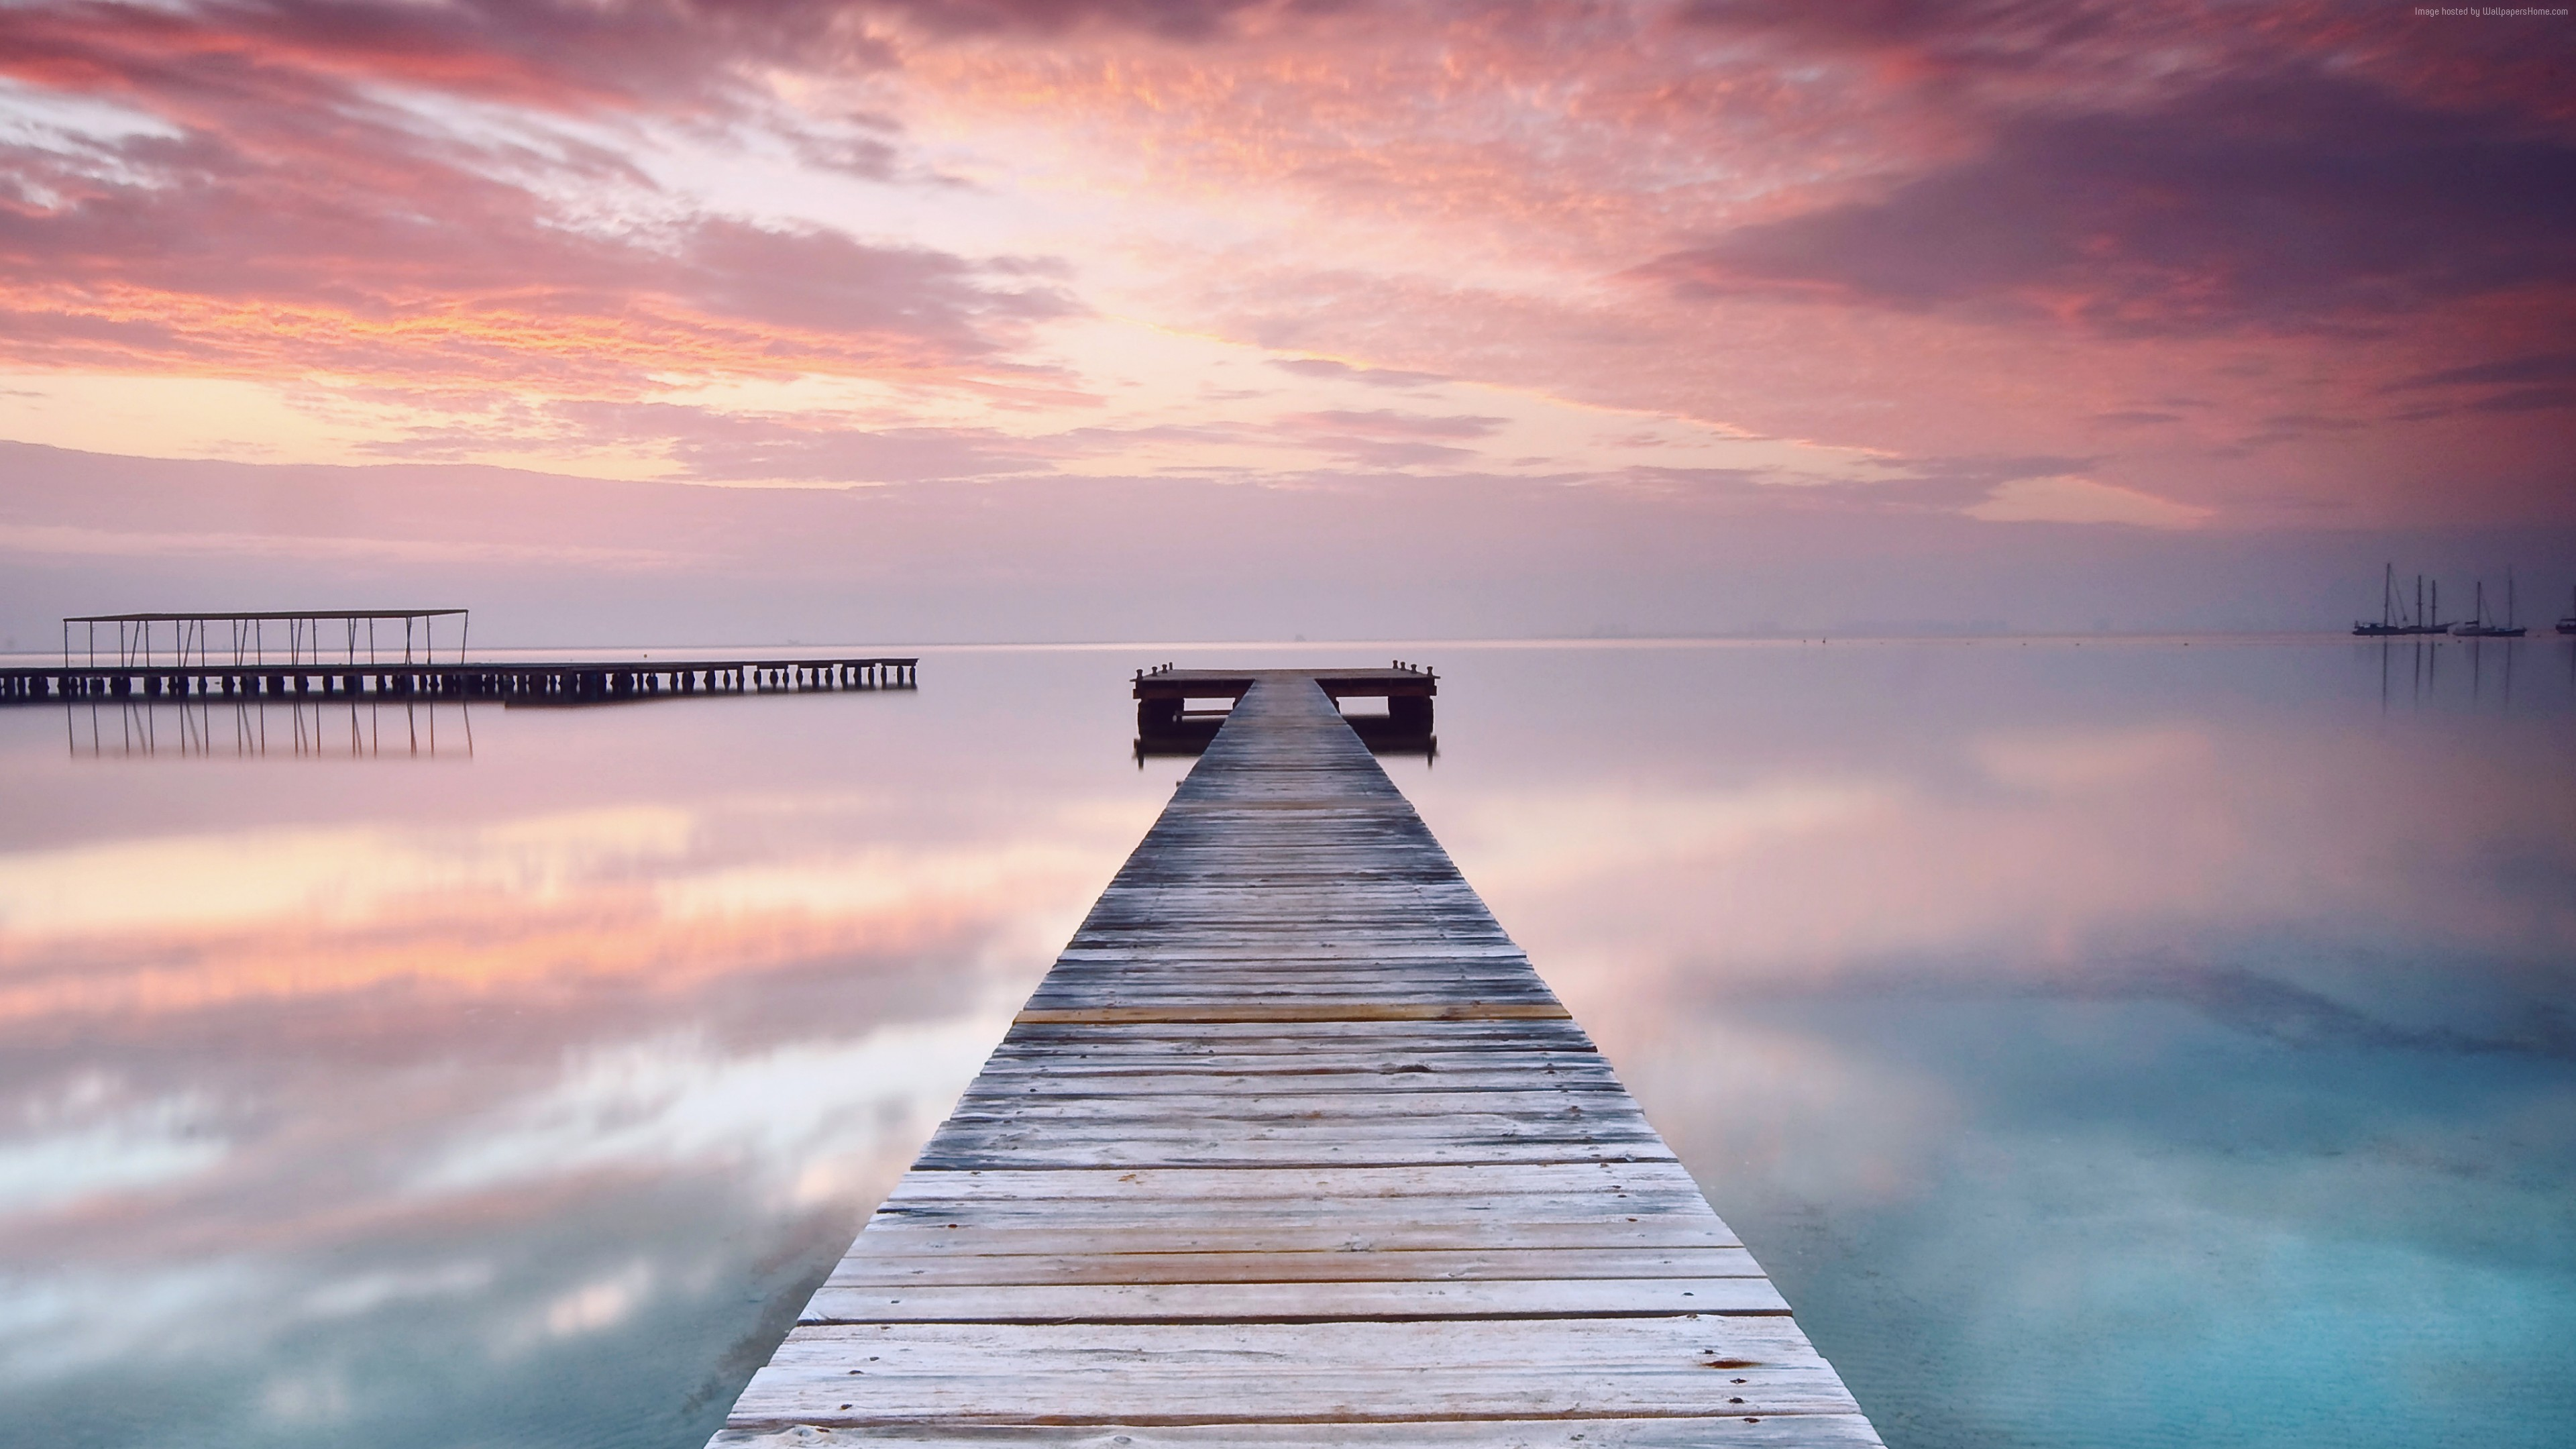 Wallpaper Spain, 5k, 4k wallpaper, pink, sky, clouds, ocean, bridge, reflection, Nature